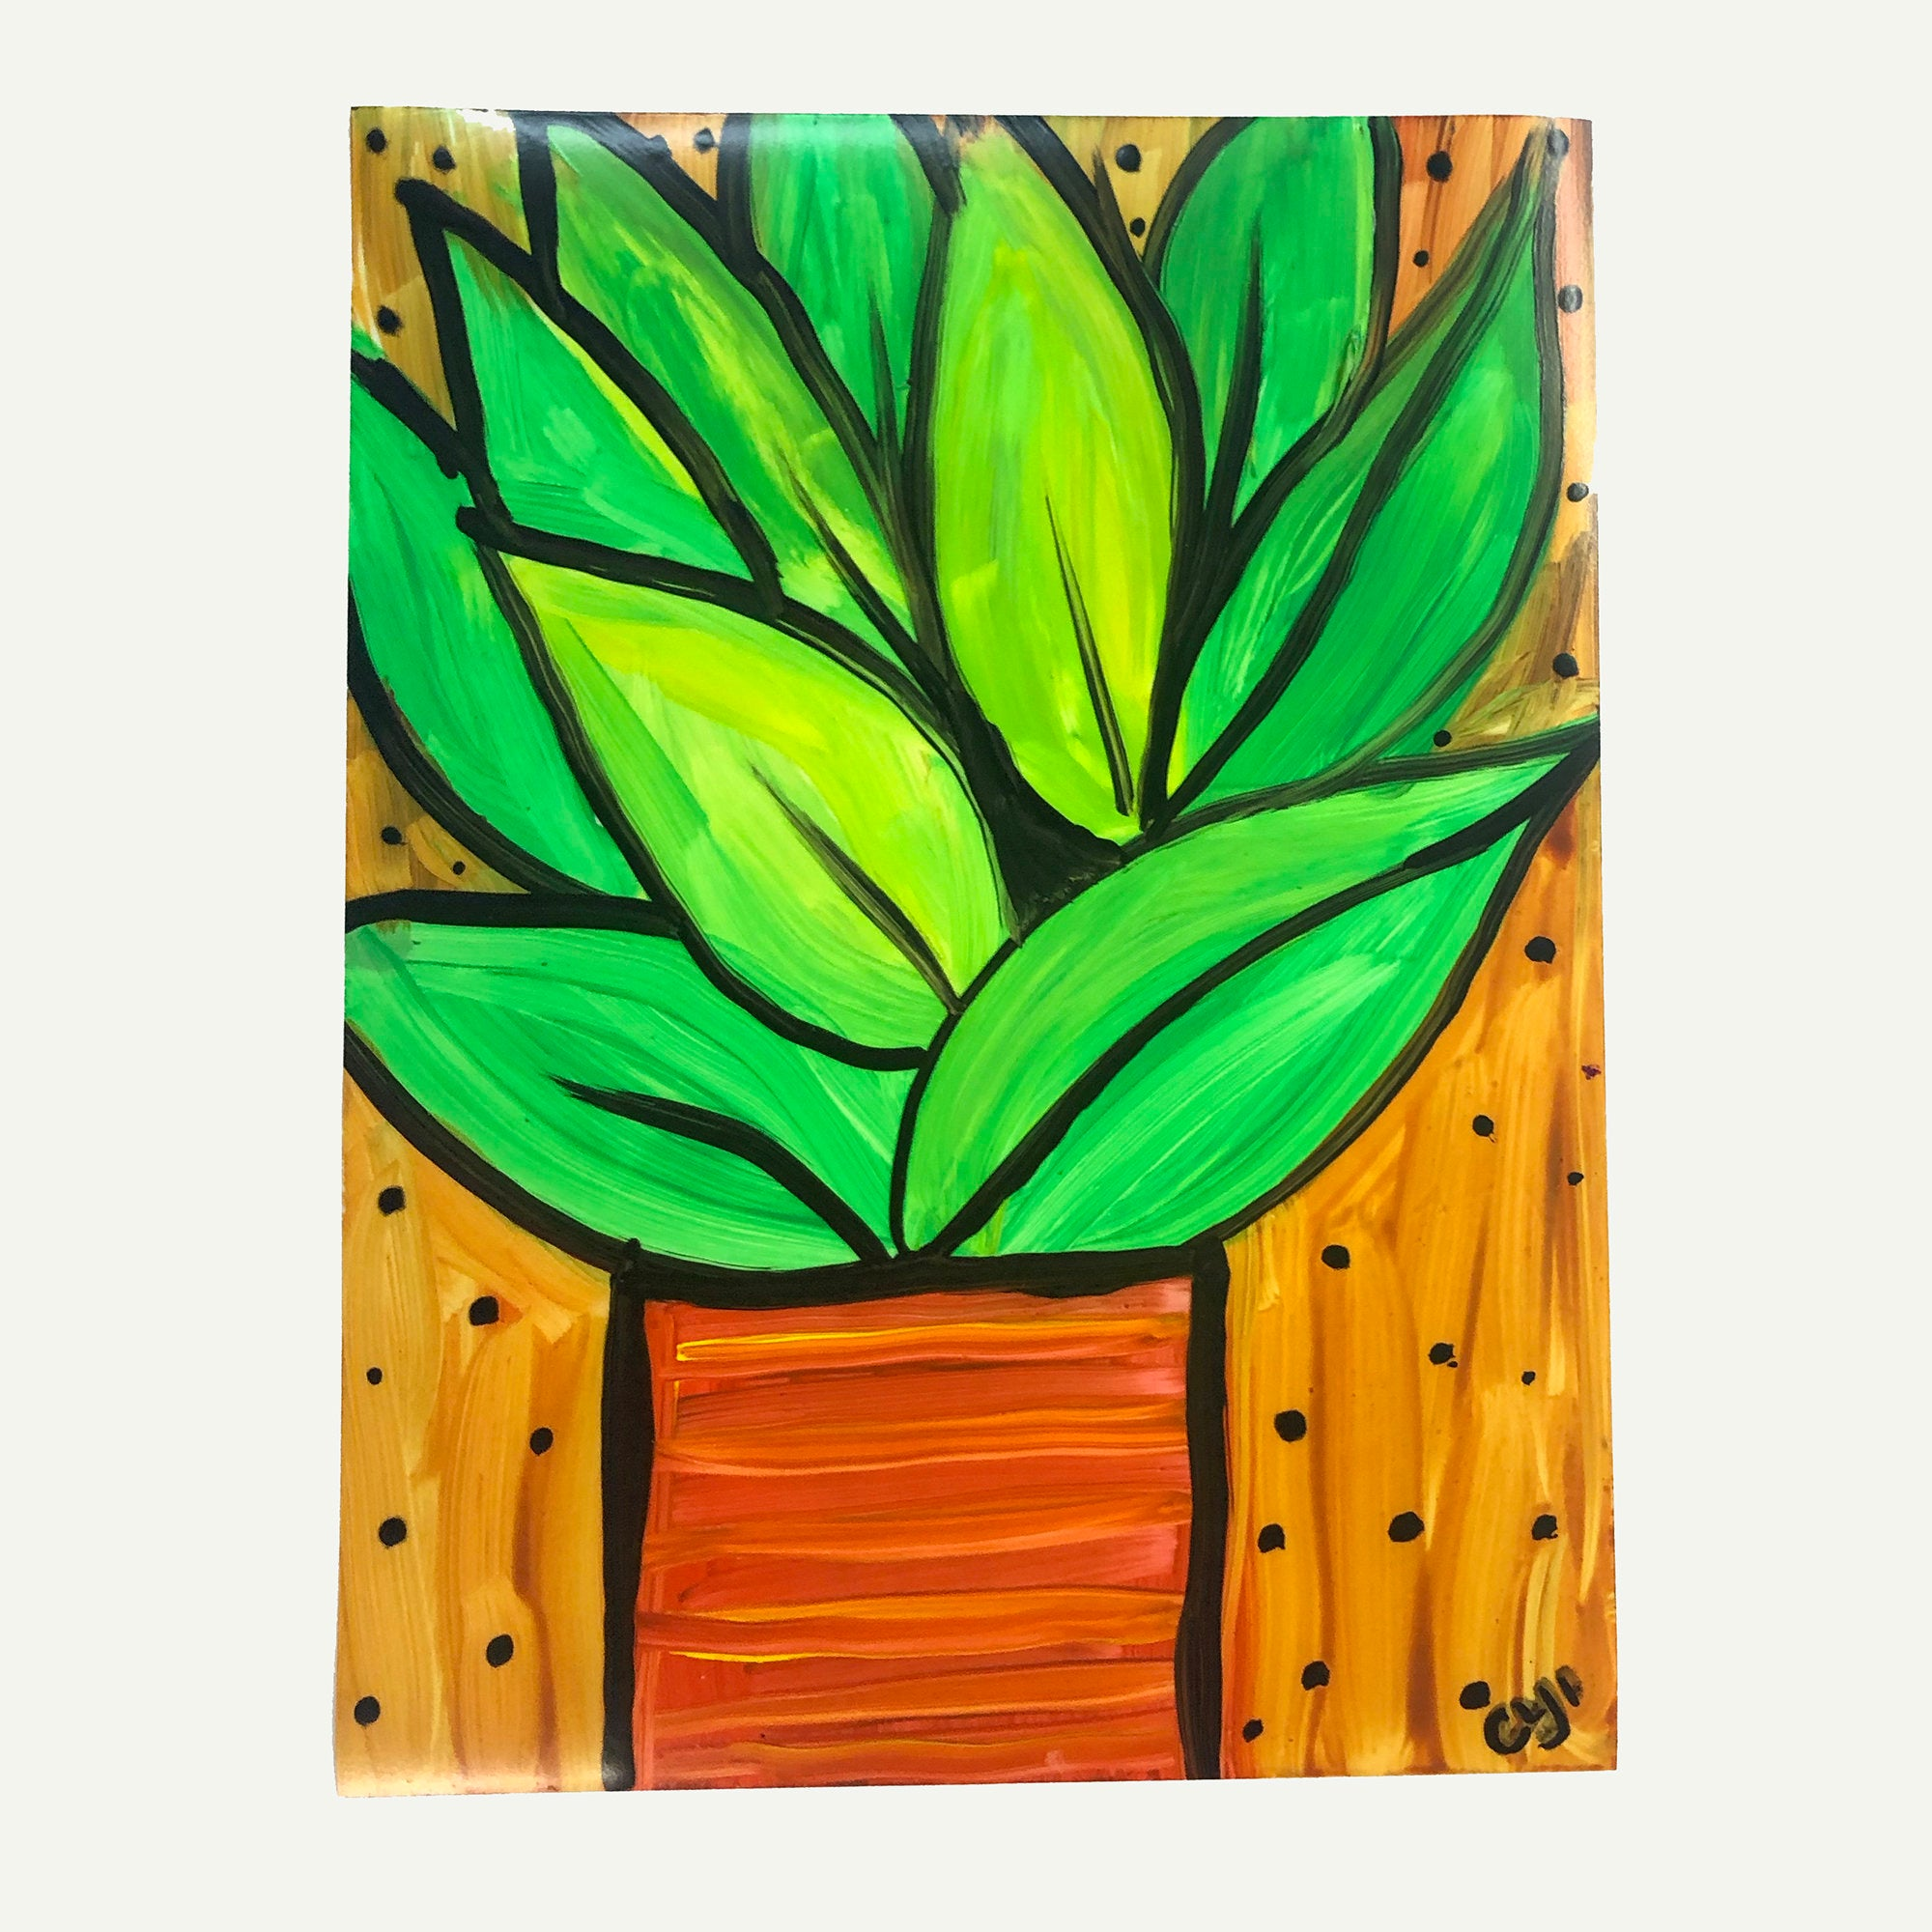 Whimsical Pothos Plant Art on Paper - Leafy Green Pathos Plant Painting on Yupo - 9 x 12 inches, unframed, work on paper